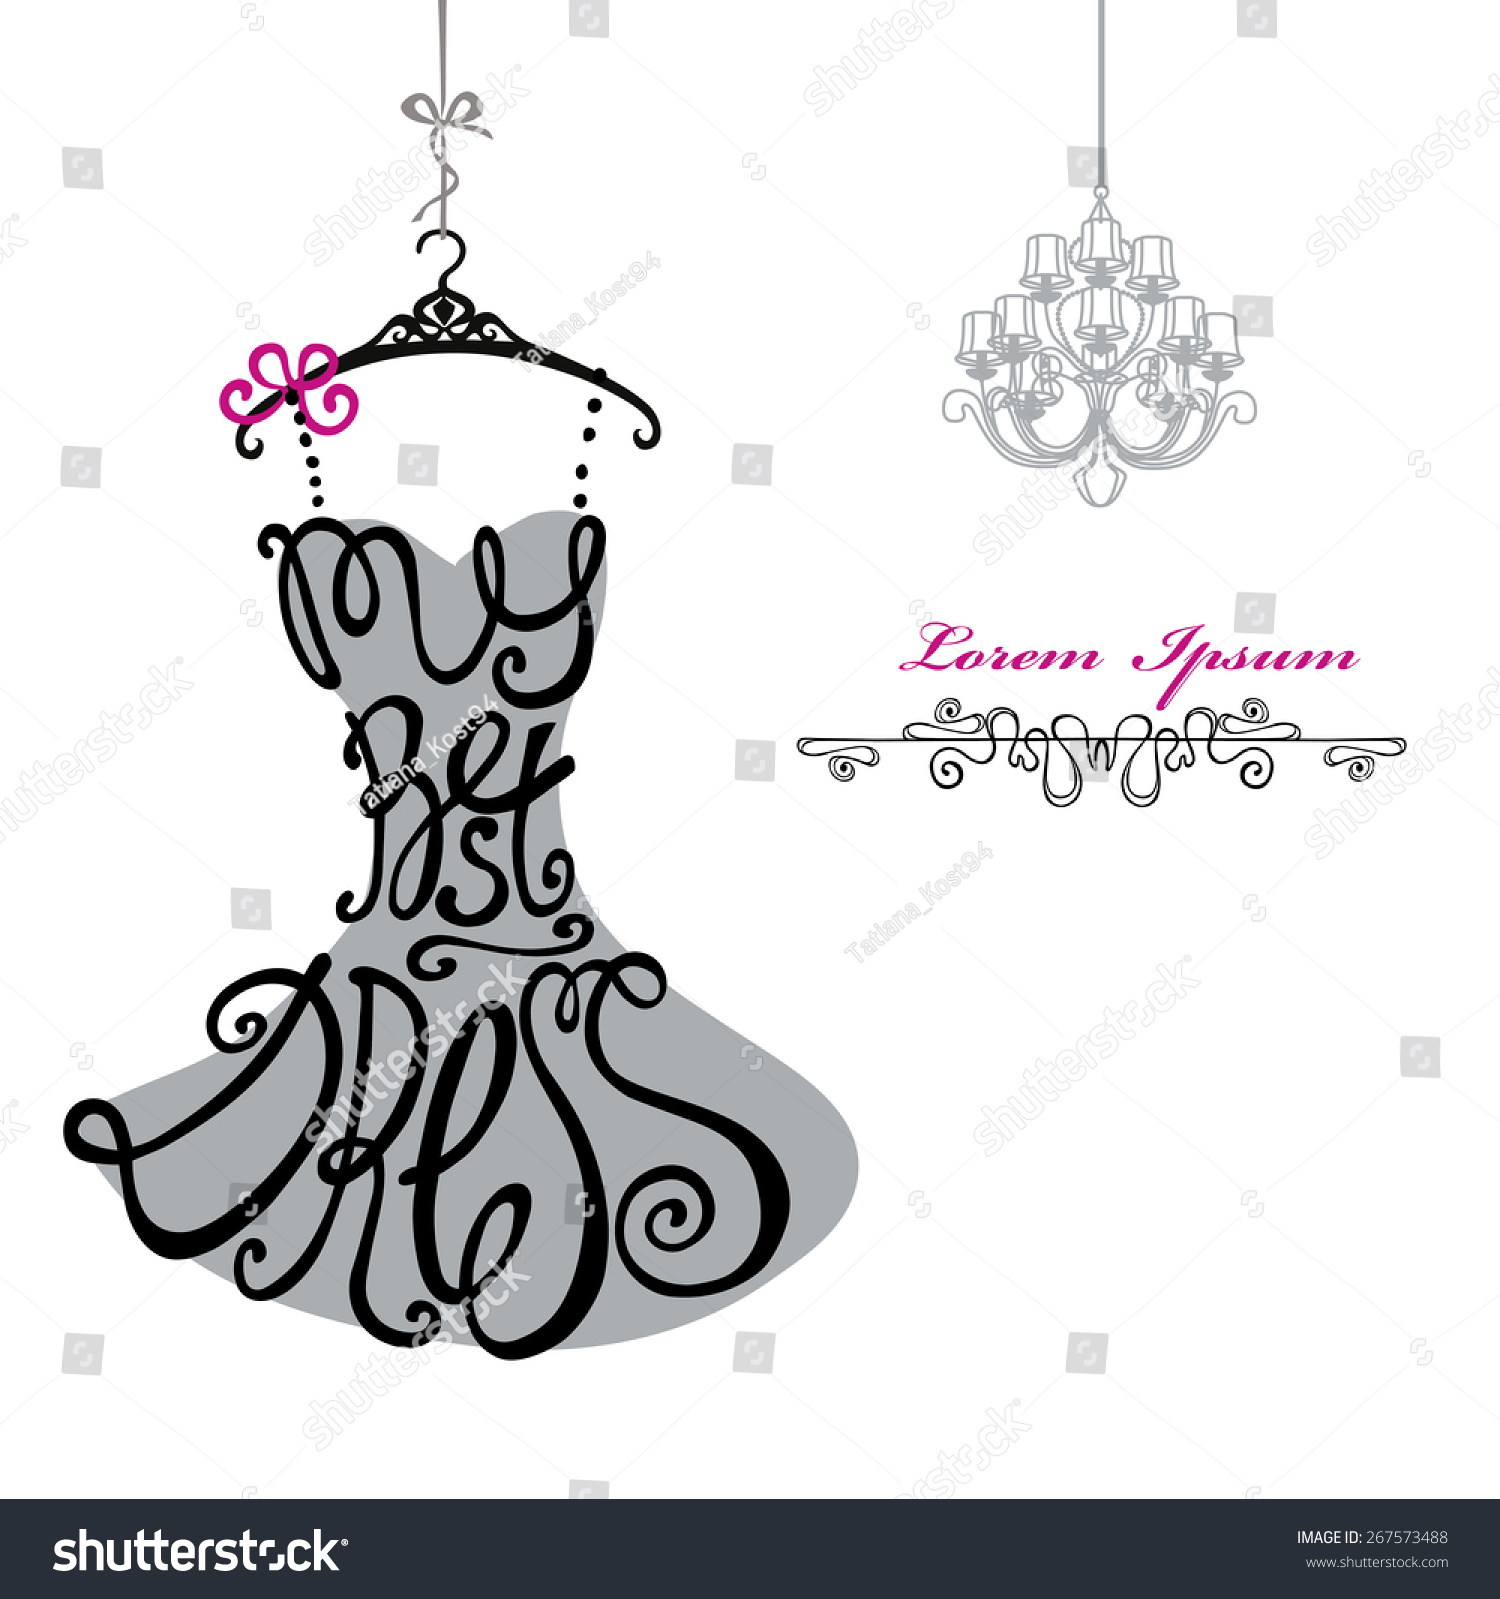 Royalty Free Typography Dress Designlhouette Of 267573488 Stock